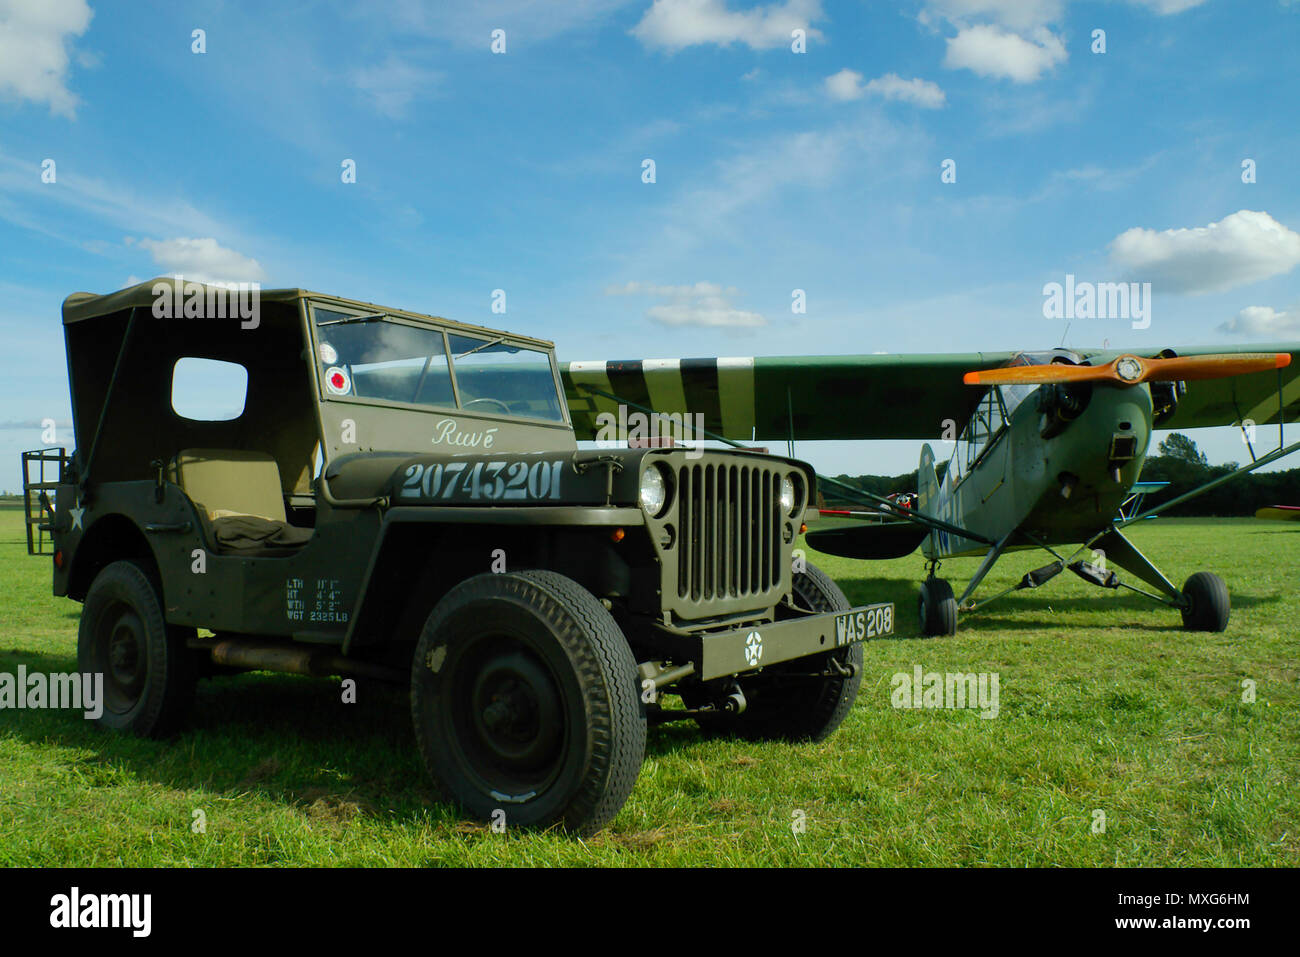 jeep willys mb stock photos jeep willys mb stock images. Black Bedroom Furniture Sets. Home Design Ideas